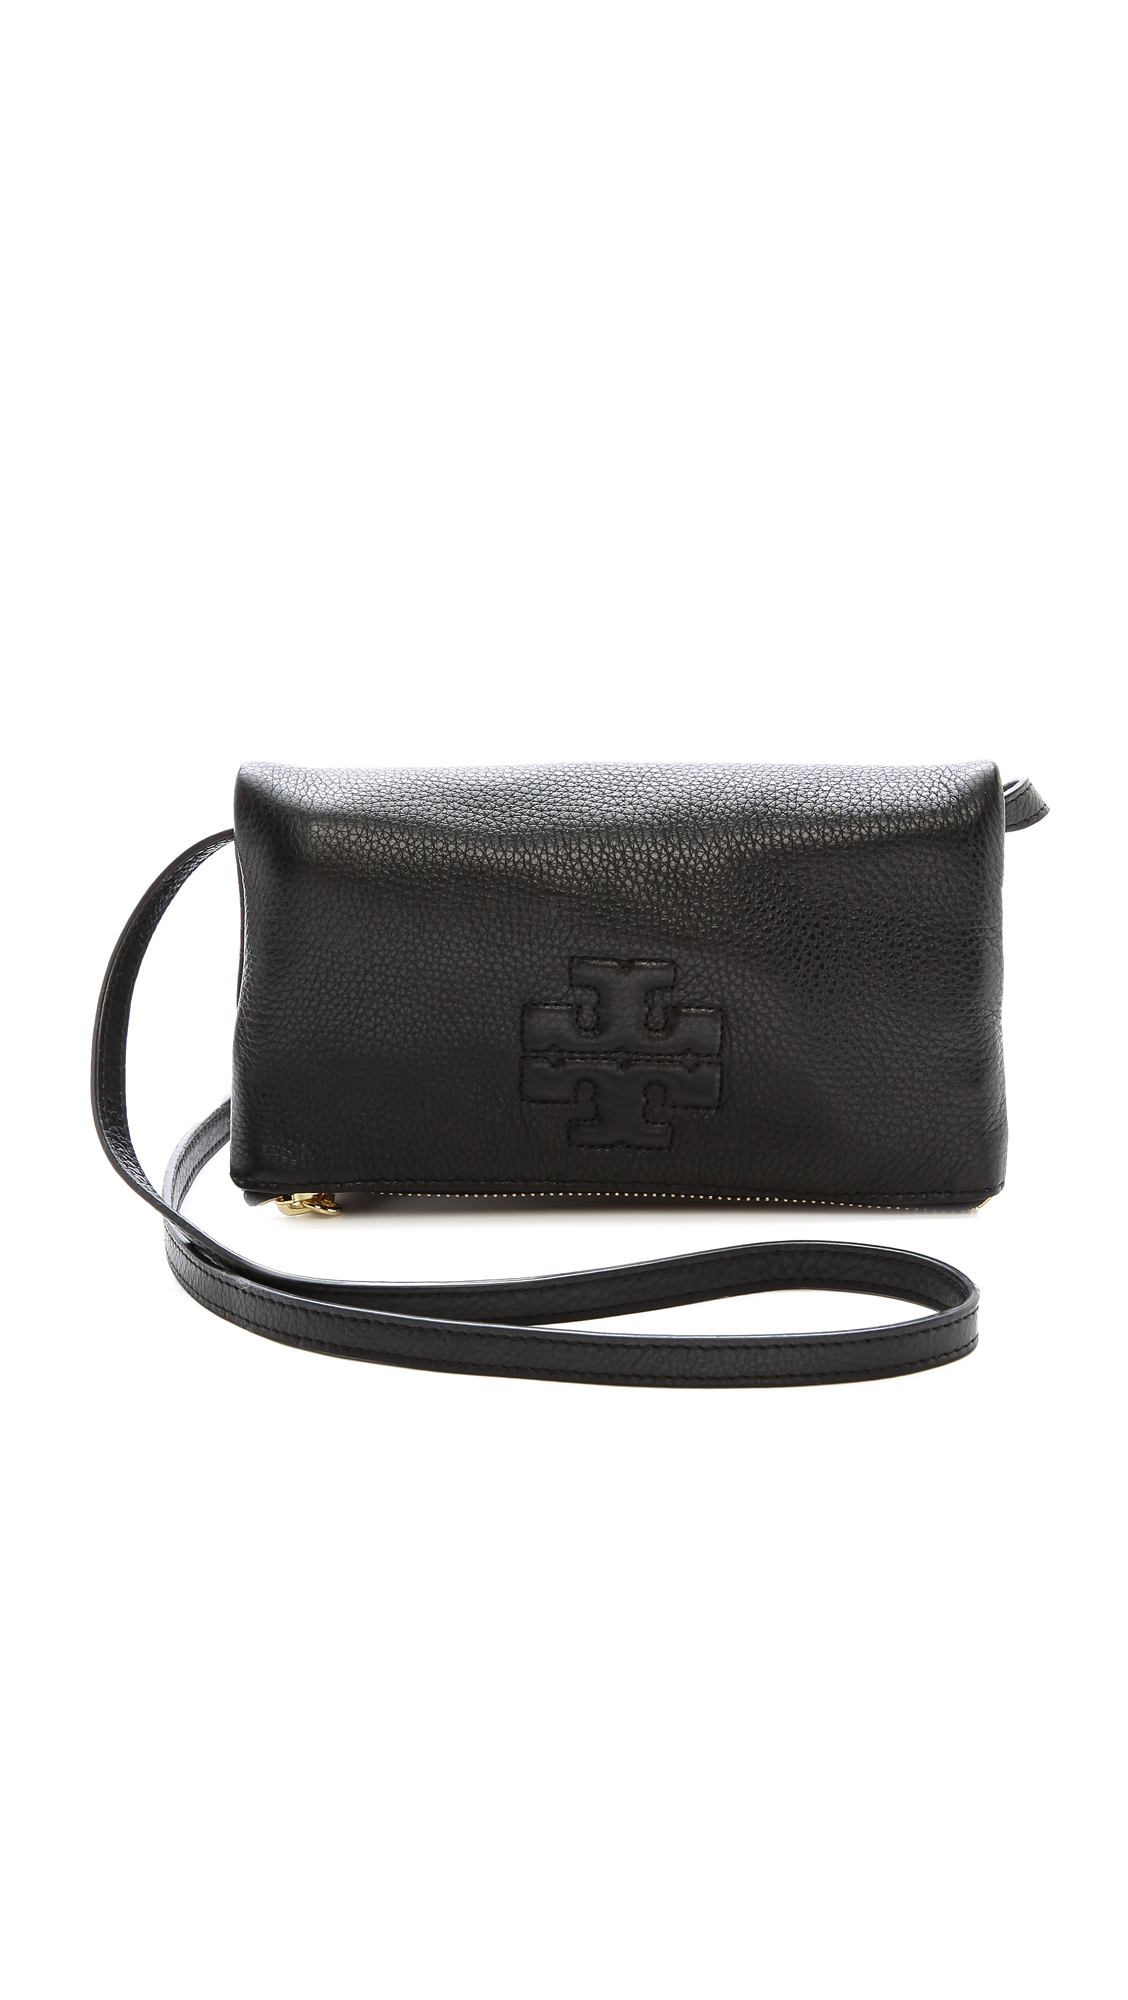 bd3c2883f3e2d Tory Burch Thea Mini Fold Over Cross Body Bag